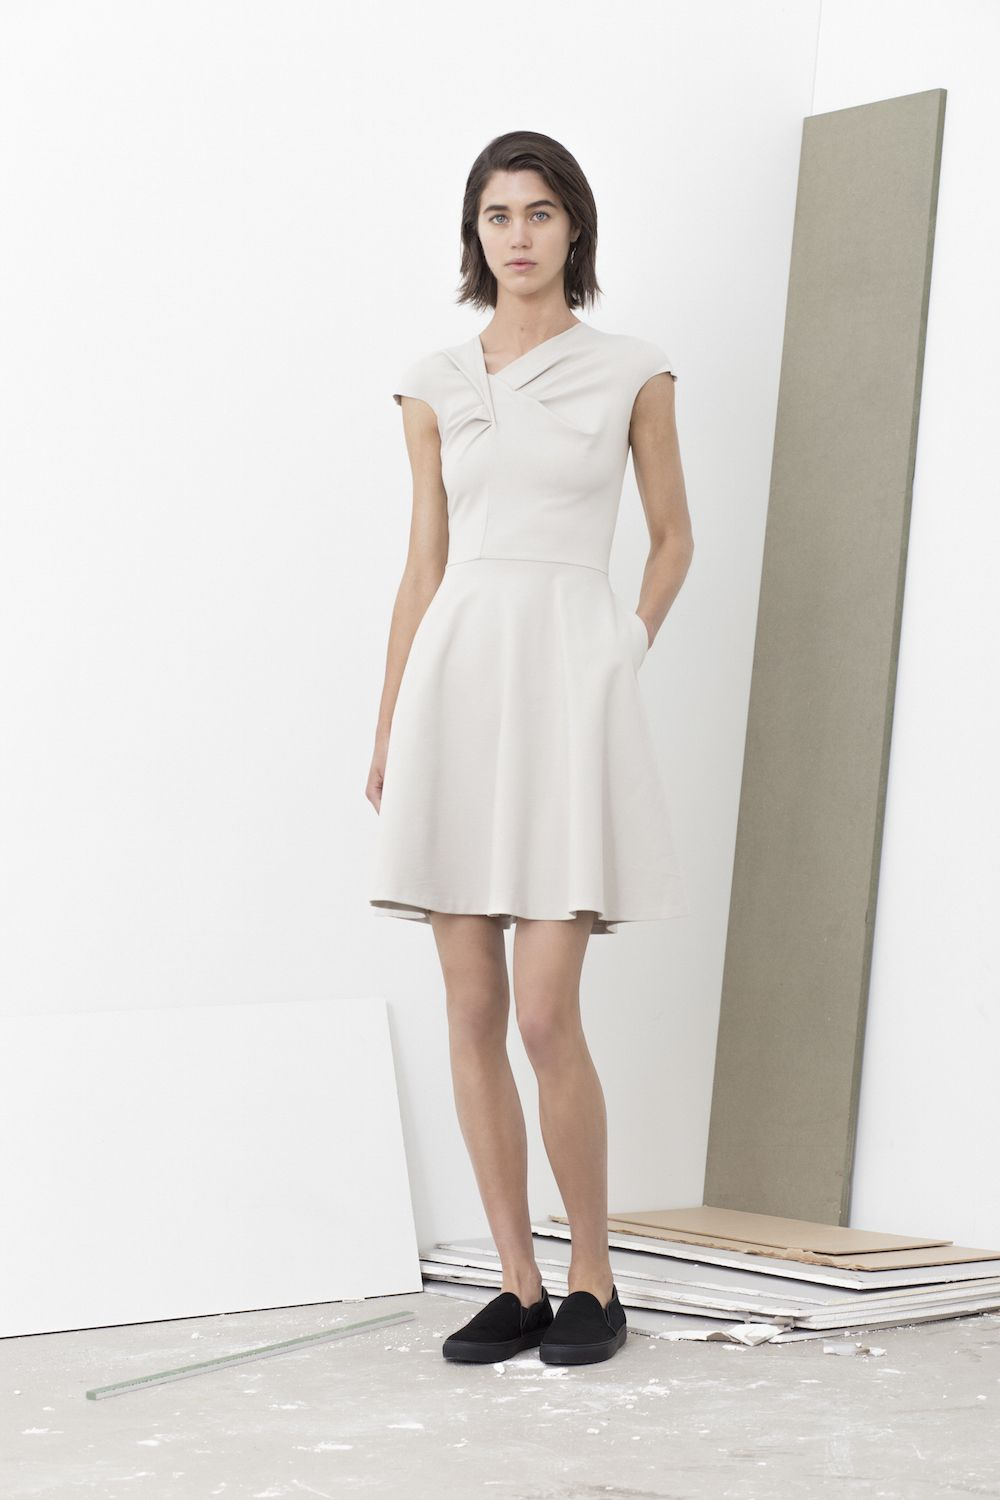 Zach twisted front dress with flair hem and seam pockets